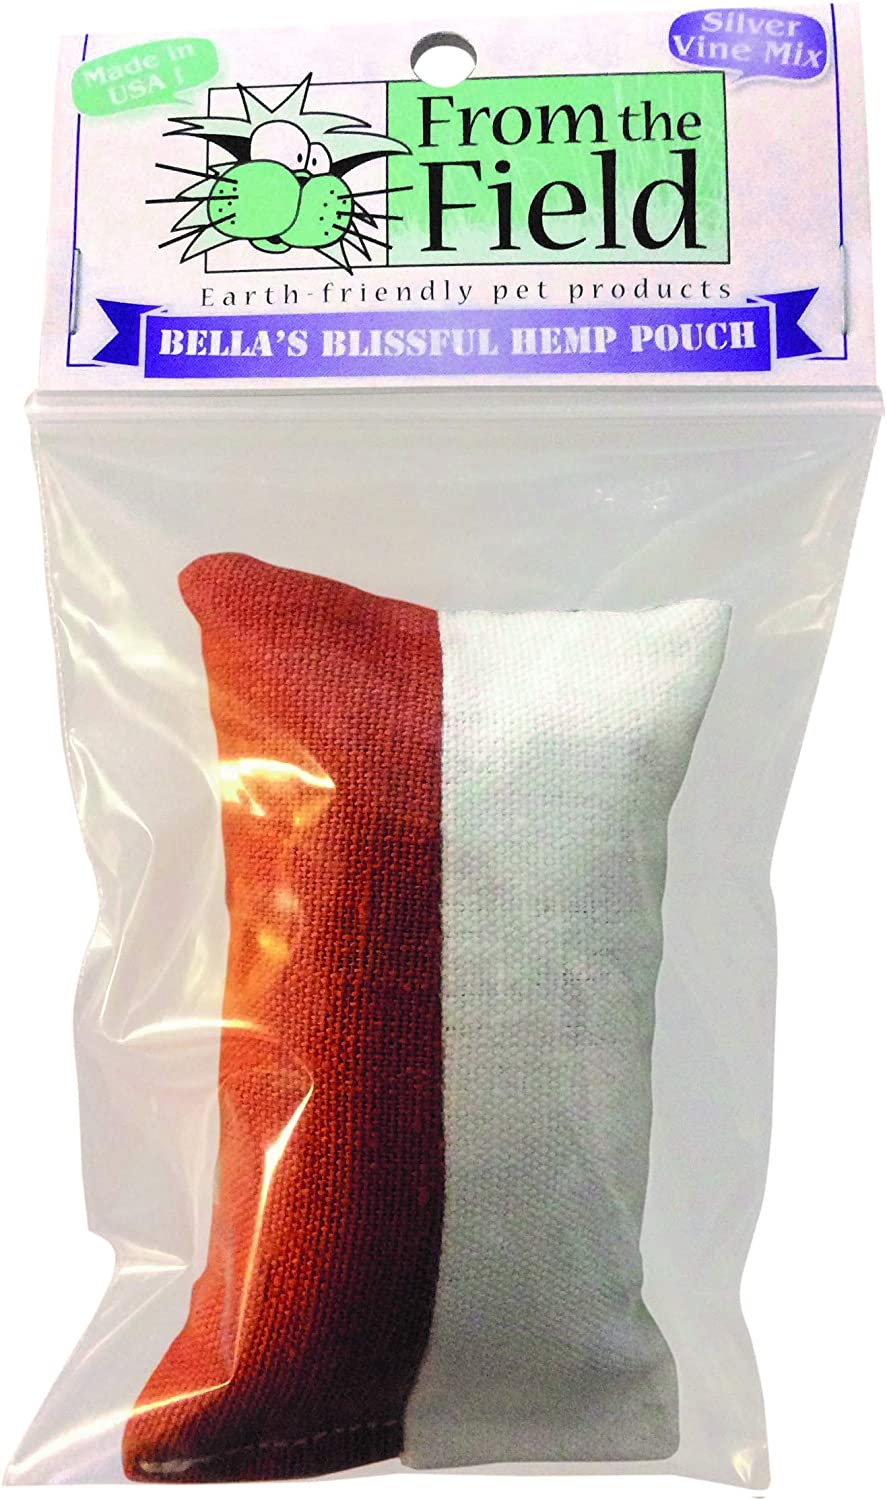 From The Field Bella's Blissful Hemp Pouch Catnip Toy with Silver Vine